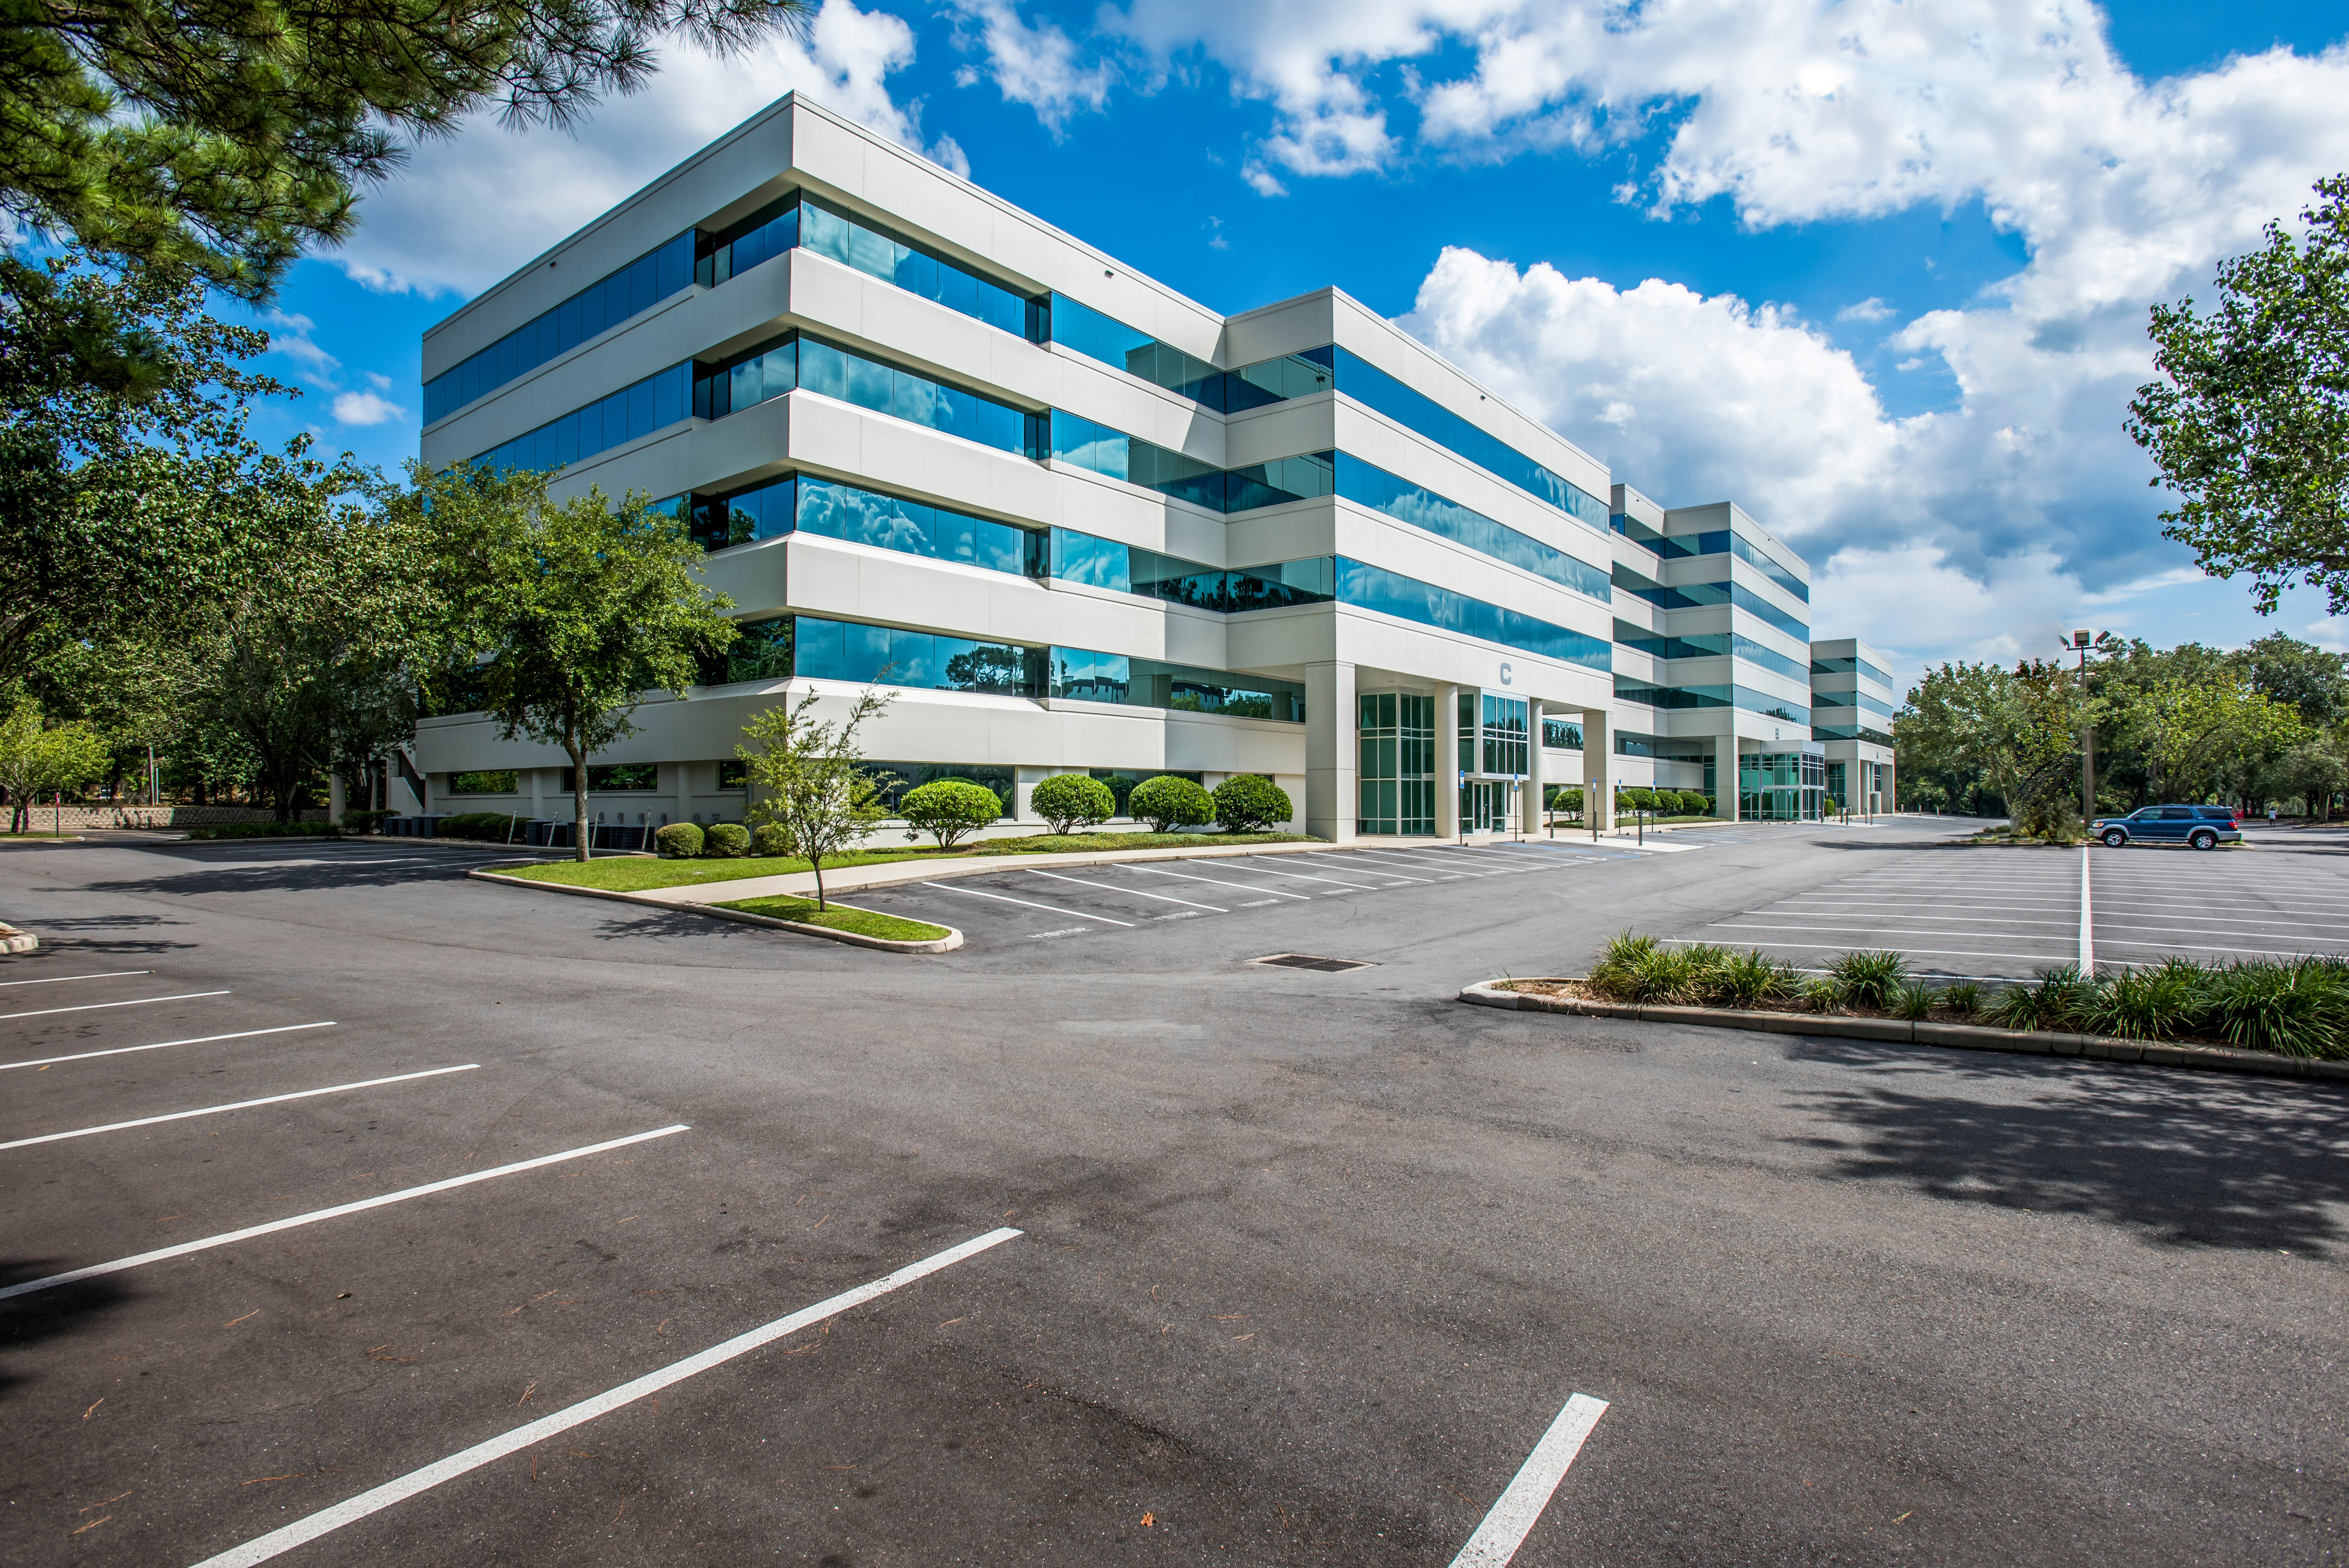 Capital Commerce Center 2601 Blairstone Road, Tallahassee 9-9-16 Ground 3866 Photoshop